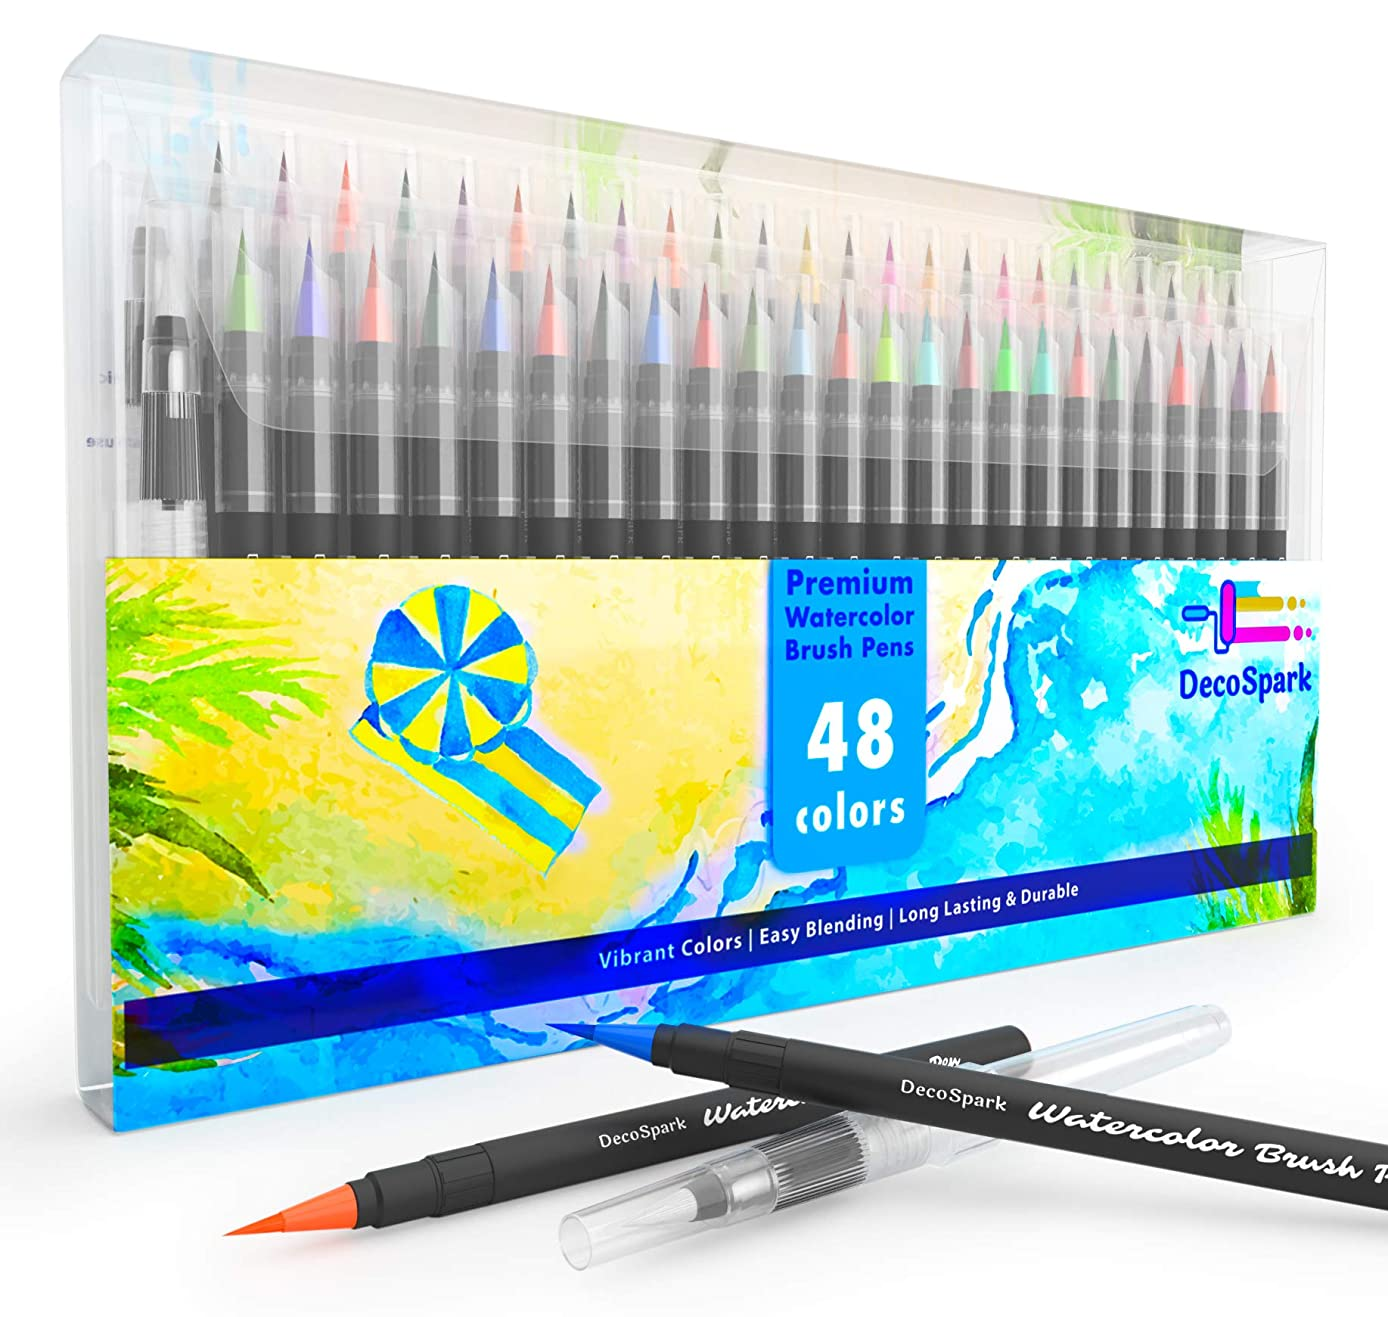 Watercolor Brush Pens Set | 48 Colors | Best Real Soft Brush Markers for Adult and Kids Coloring Books, Drawing, Calligraphy, Writing and More | Ultra Bright Pigment, Non-Toxic, Acid-Free | DecoSpark